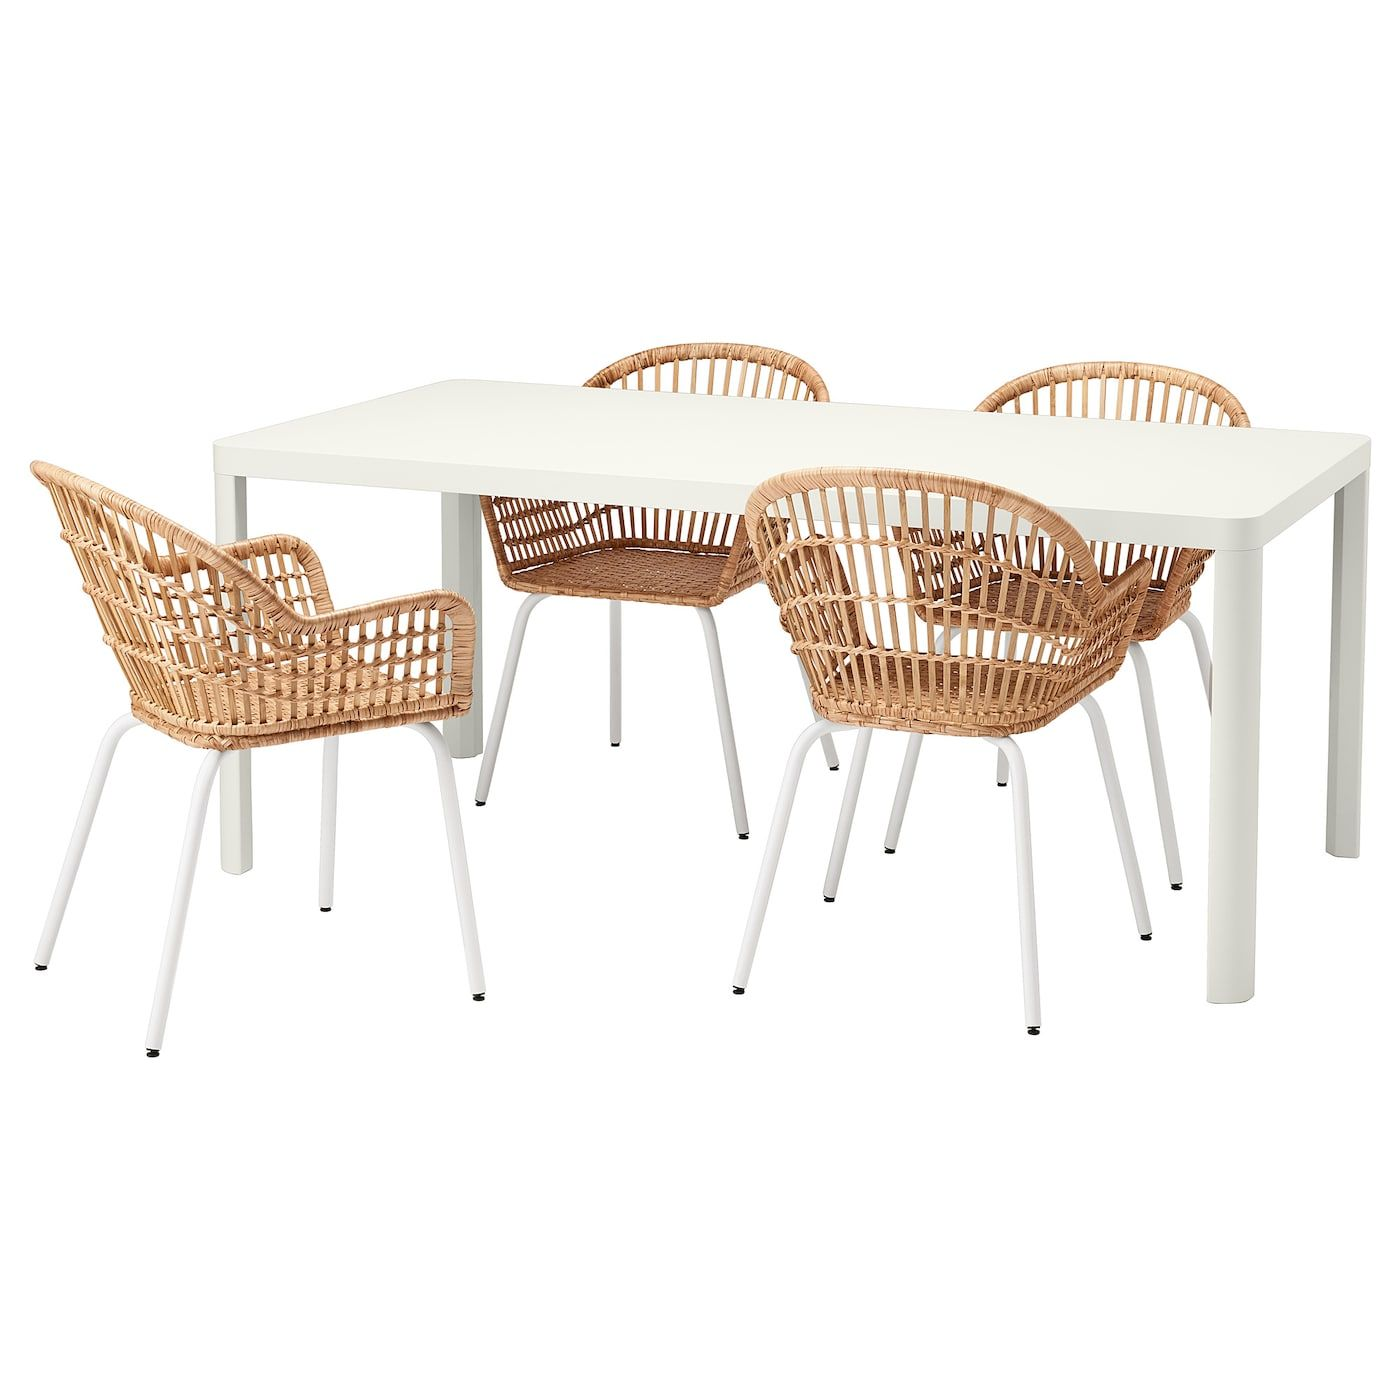 TINGBY NILSOVE Table and 4 chairs, white, rattan white